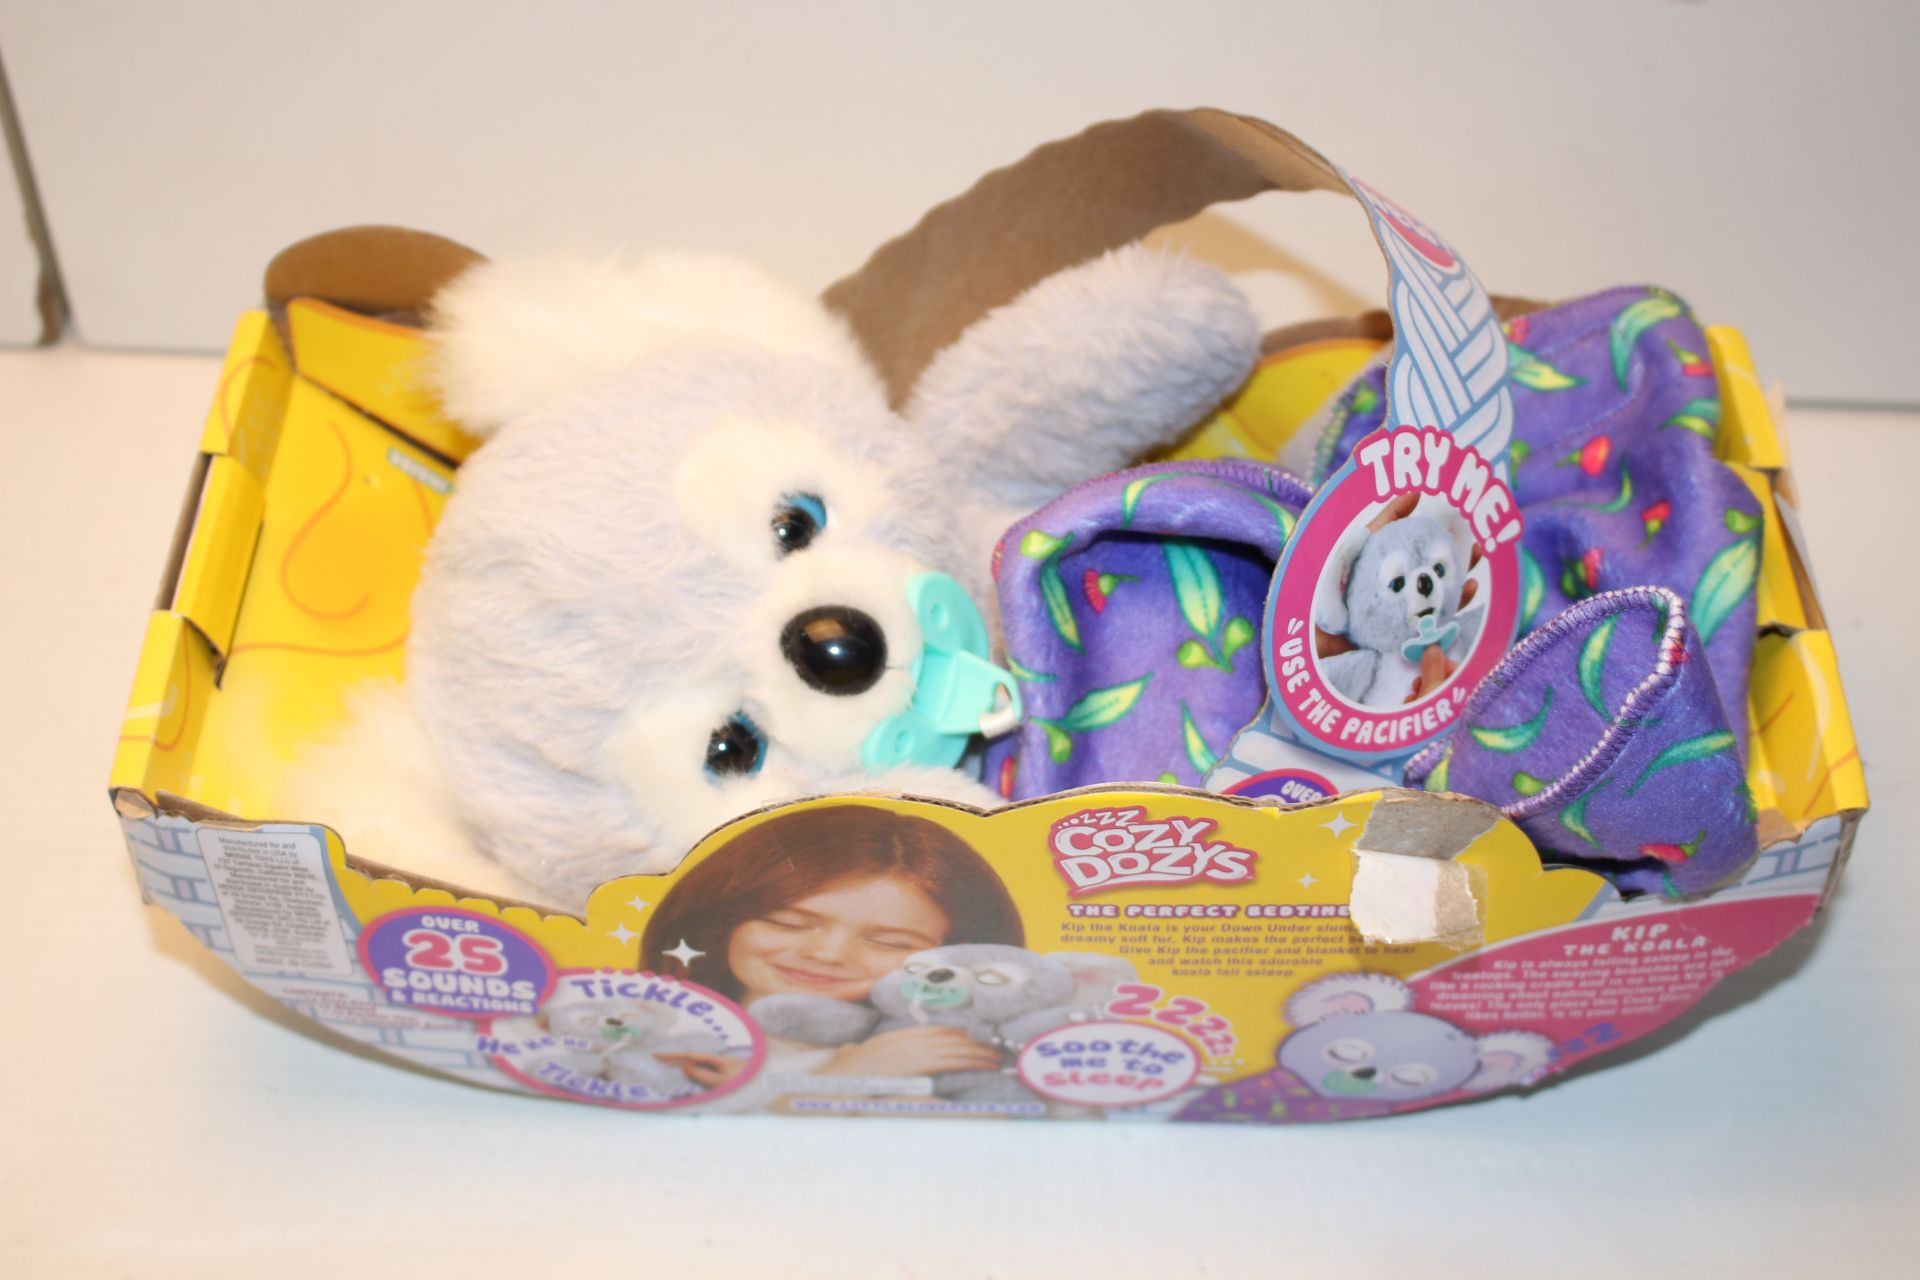 BOXED COZY DOZY'S KIP THE KOALA!Condition ReportAppraisal Available on Request- All Items are